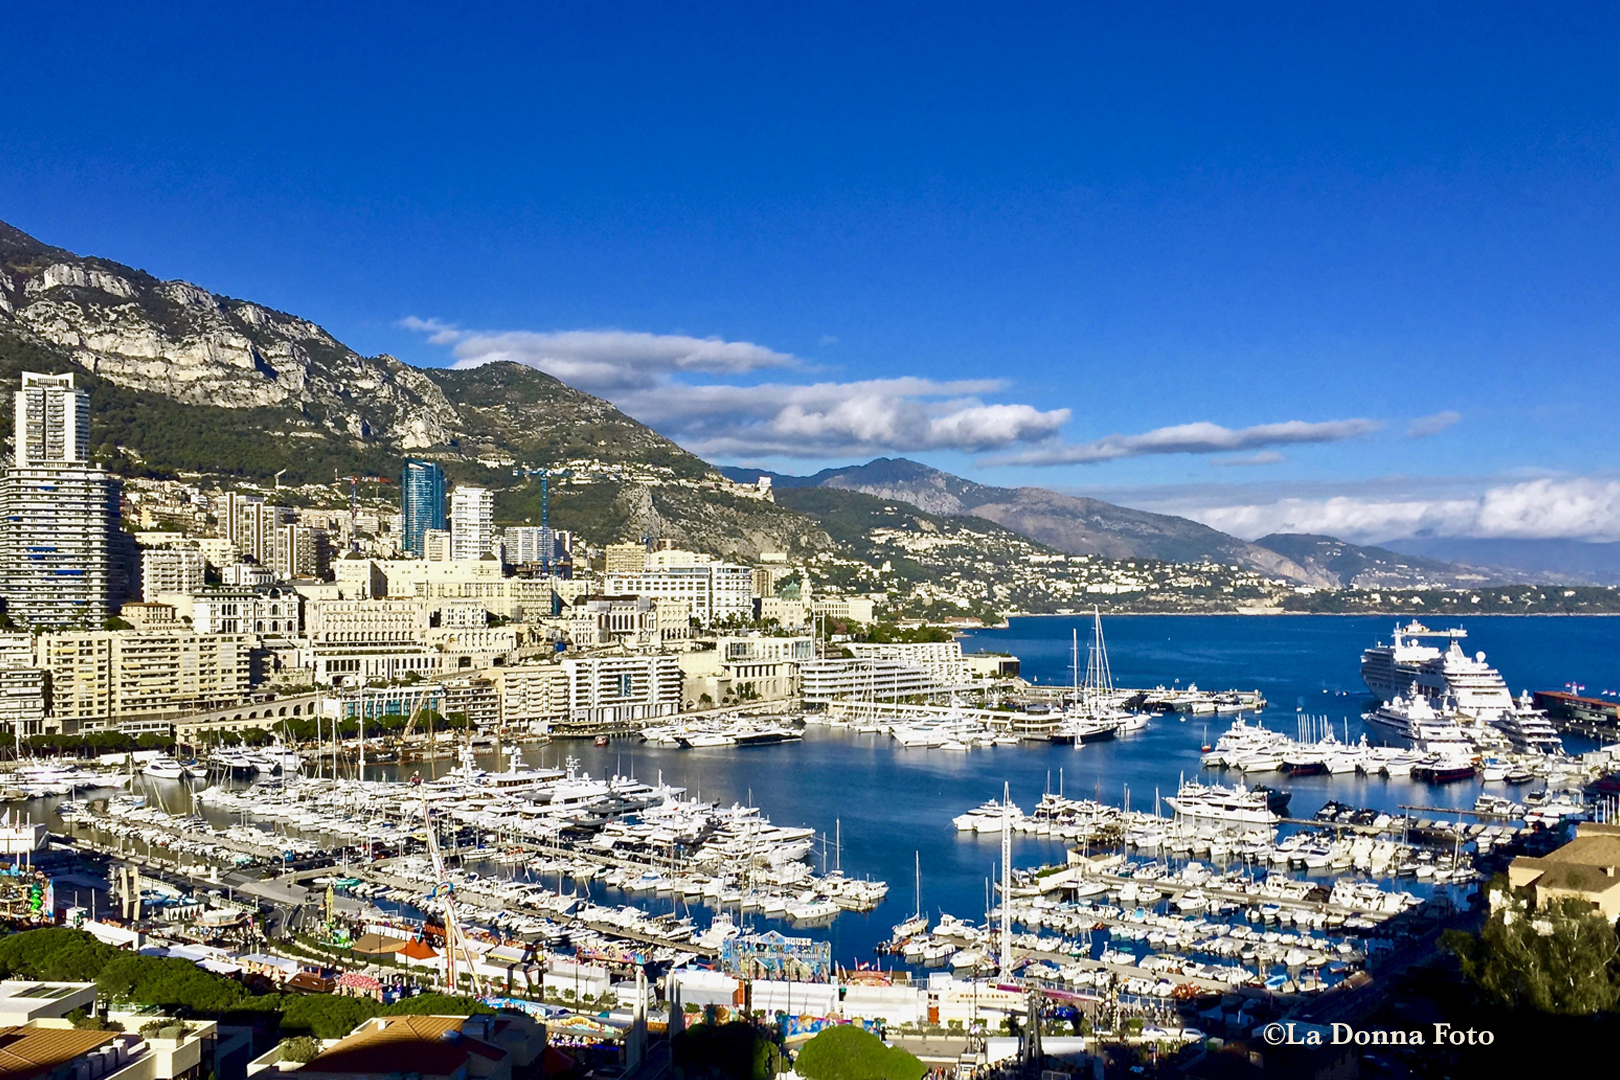 View of Royalty-Monaco Marina - Italian Landscape Photography - La Donna Foto Houston, TX 77007